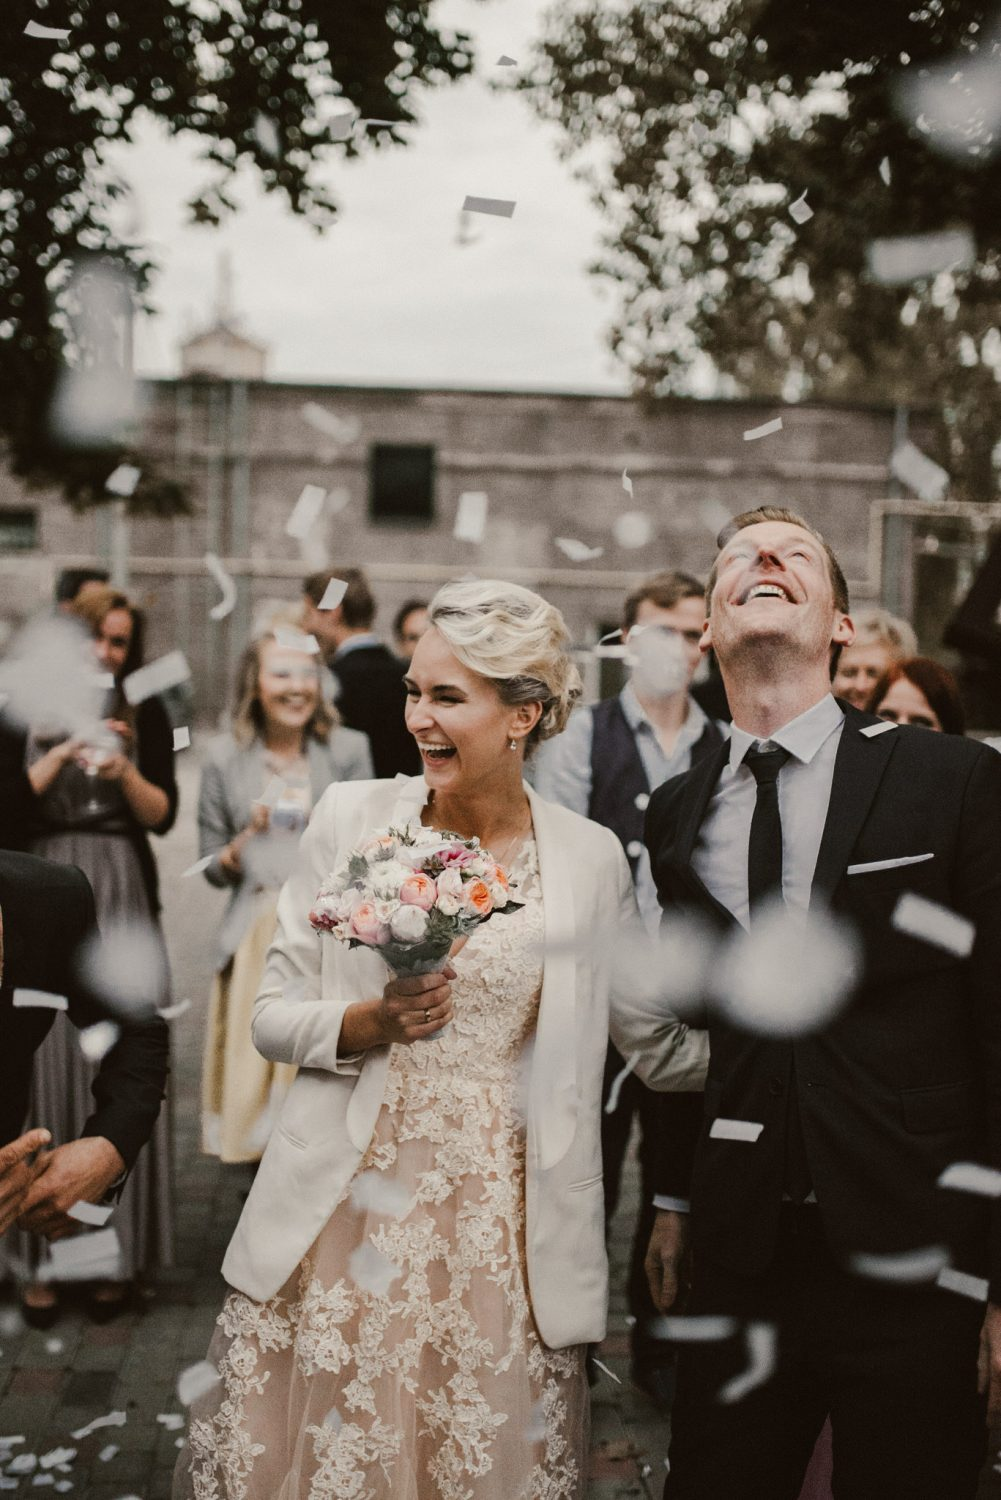 best wedding photos by miks sels